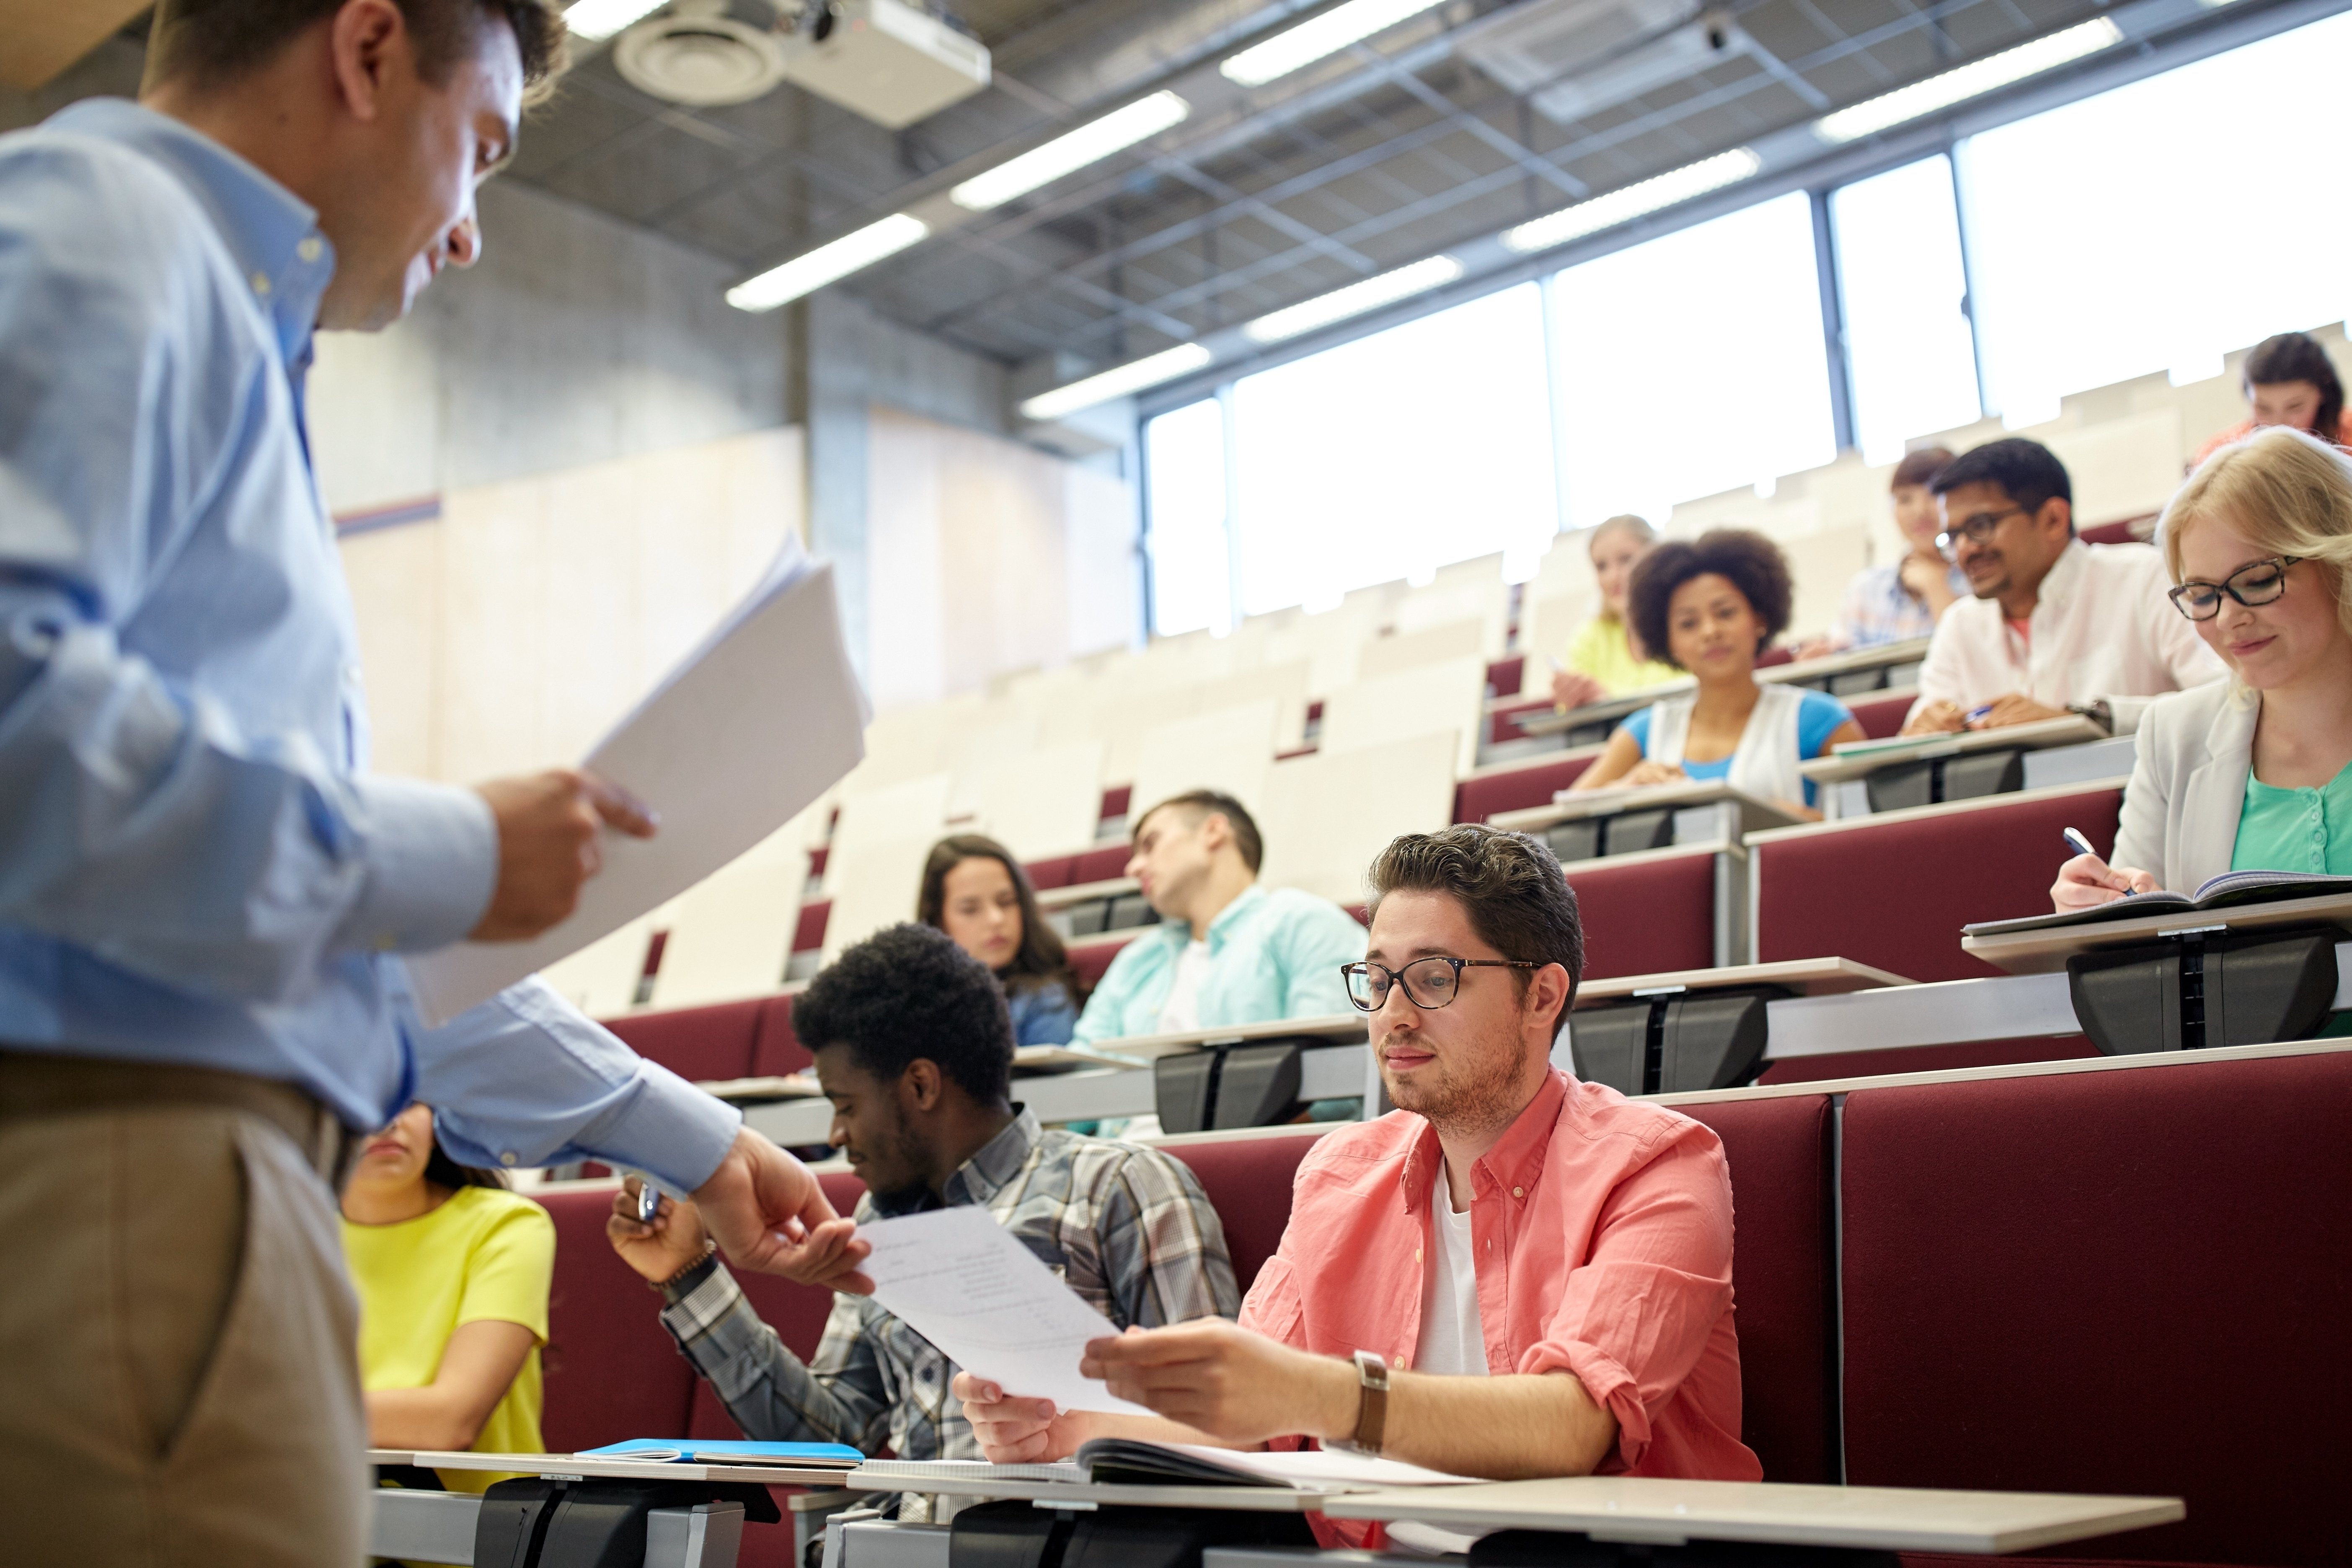 Classroom of professionally dressed students receiving papers from professor